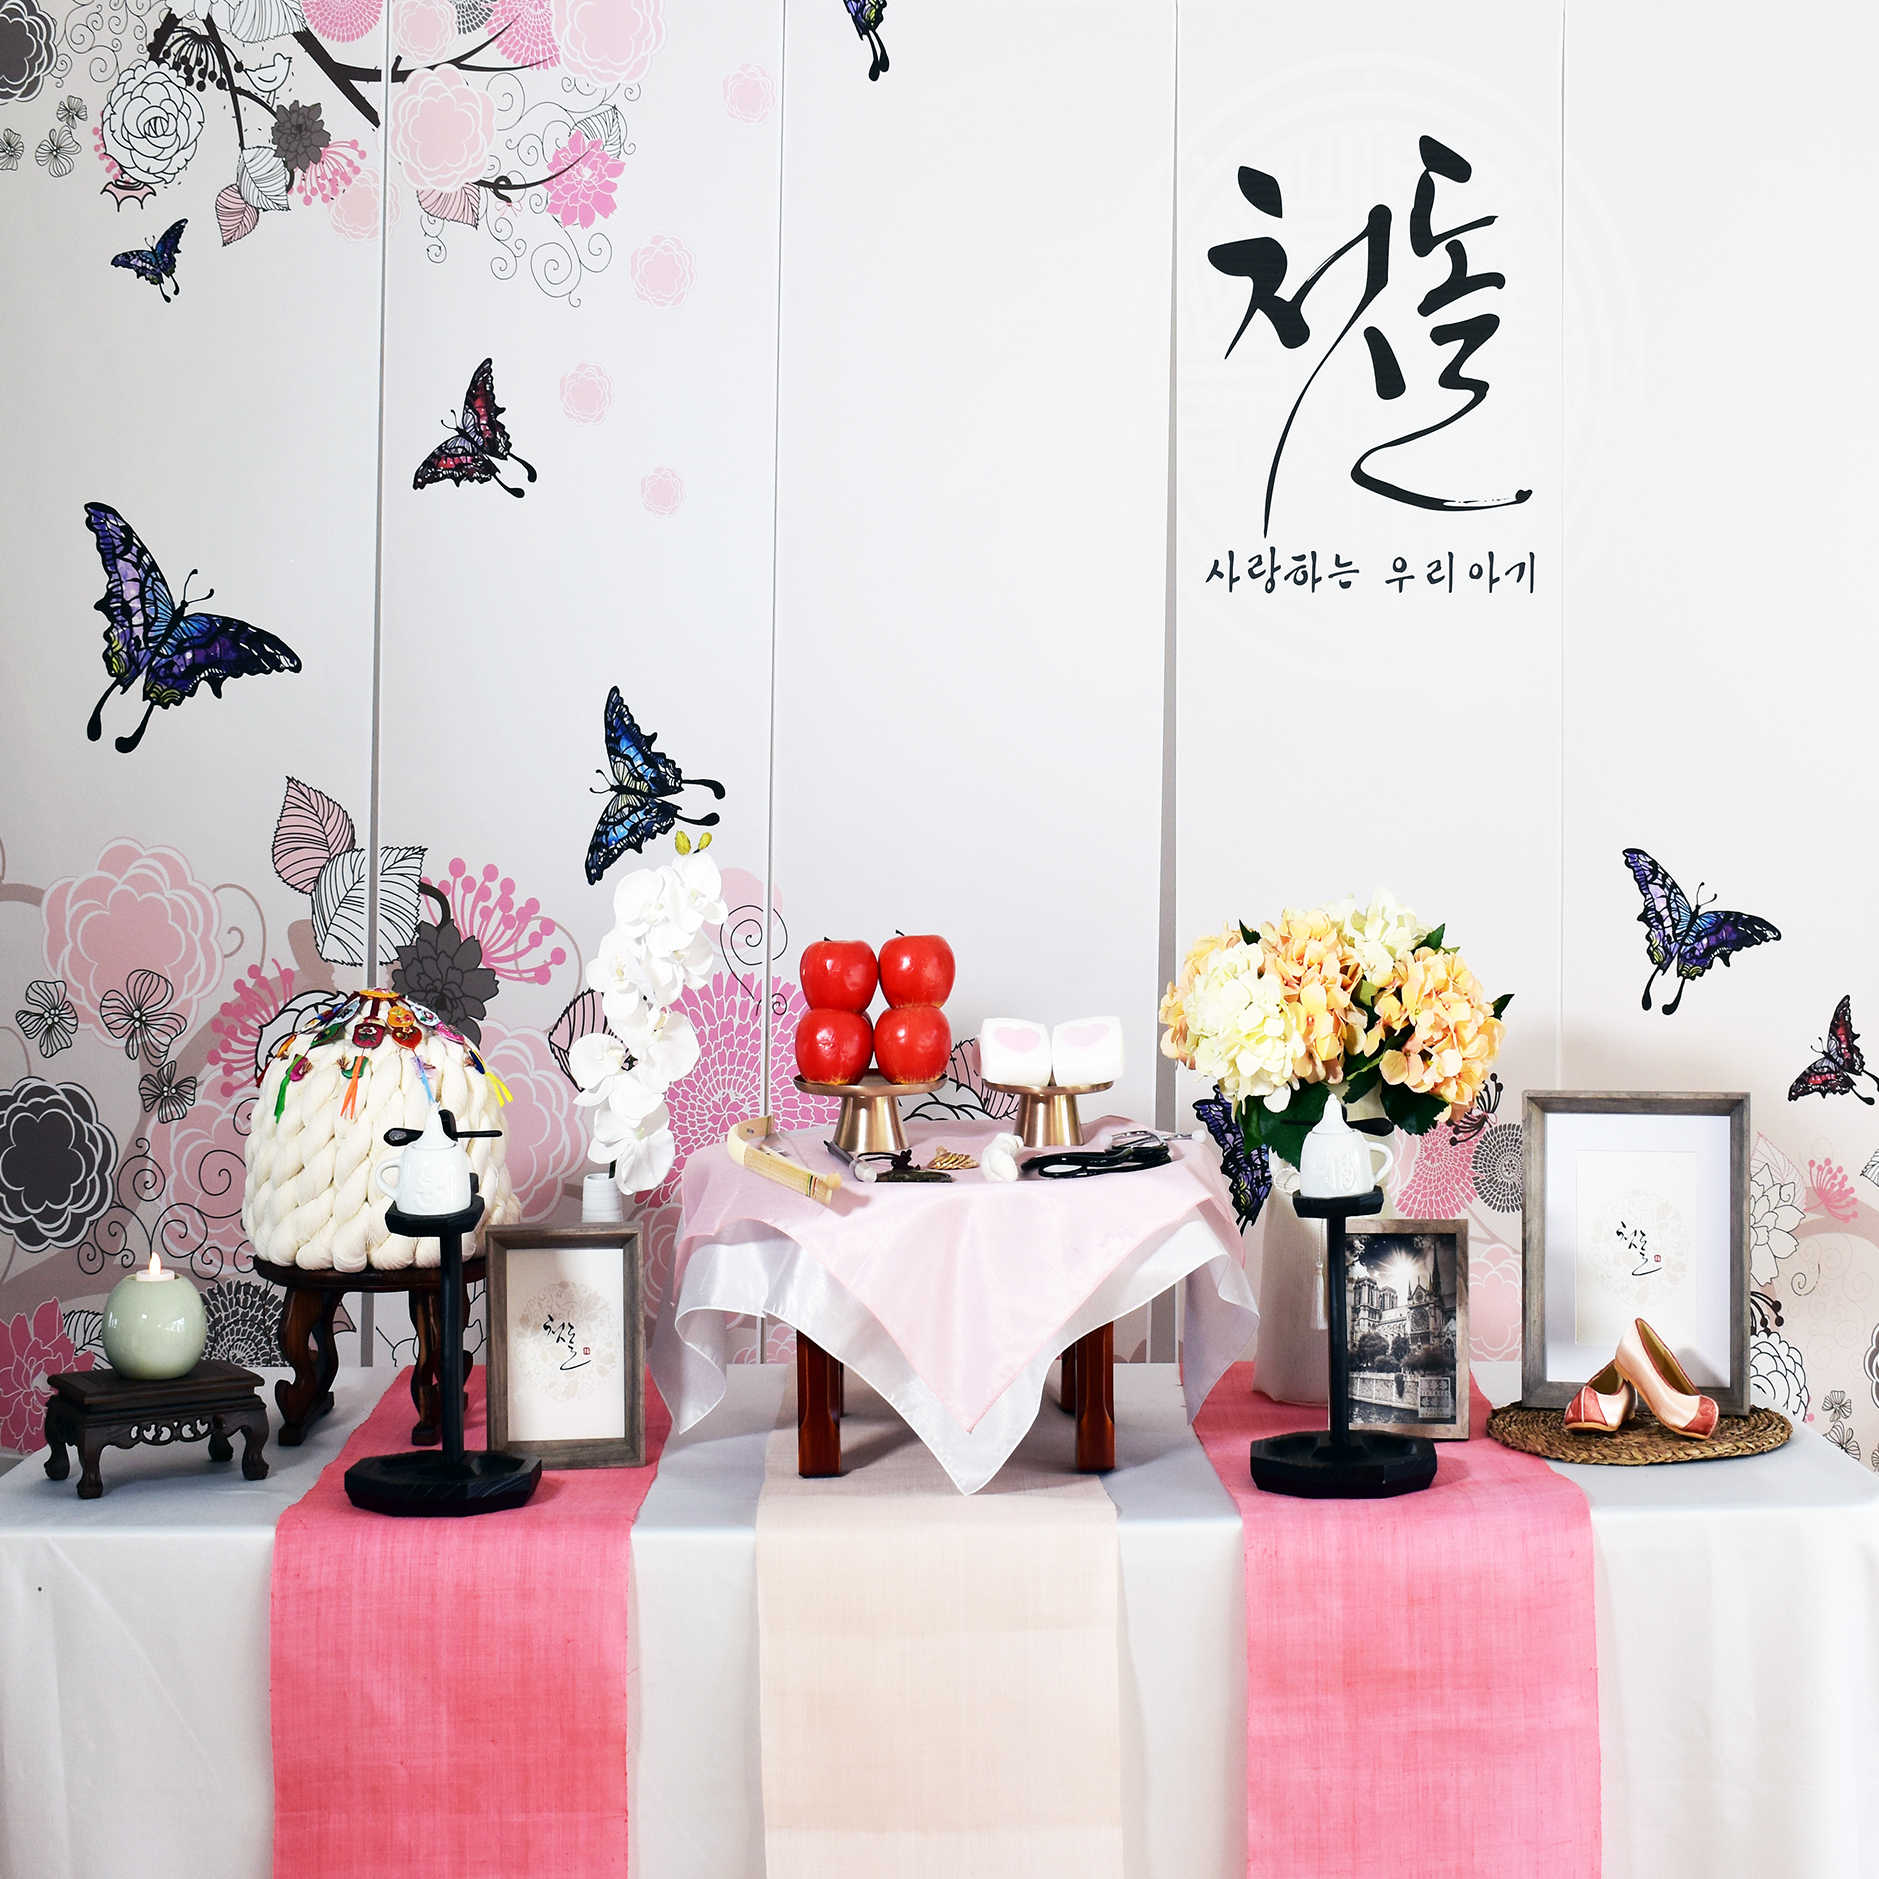 PETIT STYLE TABLE RENTAL: 핑크나비 (Pink Butterfly) - Included: Pink Butterfly backdrop, round wooden table, traditional tablecloth, traditional runner, small tablecloth, 2 kerosene lamps, 1 mini wooden square table, traditional candle holder, display apples, rice cakes, silk flowers and plastic vases, shil ta rae, traditional accessories are randomly picked, 3 picture frames (5x7), Doljabi Items (Pick 5 items- Ma-pae, coin, stethoscope, writing brush, thread, bow and arrow)** Mix &Match backdrops and runners (choose from traditional table)*** Pick up- Everything included in the picture except display rice cakes, display fruits, brass plates.* Out of state - mini wooden table, display rice cakes, apples are not included. (optional) Will change to 2 small picture frames. All accessories are randomly picked.*Shipping fee will apply. Fees might vary depending on location.상품구성: 현수막, 상 1개, 고급 한복 원단 테이블보, 한복 원단 러너,상보, 호롱불 촛대 2개, 호롱불 2개,전통 사각 소반 1개, 전통 촛대 1개, 모형 사과, 백설기, 꽃과 플라스틱병 1개, 조화 난과 꽃병 1개, 상화, 실타래, 전통 장식품들 랜덤, 액자 (5x7) 3개, 돌잡이 용품(5개 선택 - 활, 실, 엽전, 마패,붓, 청진기)** Traditional Table 에서 현수막, 러너 Mix & Match 하실수 있습니다.* Pick up- 사진에 모든 물품 포함되지만 모형떡, 과일, 유기그릇은 포함되지 않습니다. 전통 소품들은 랜덤입니다.* 타주시- 깨지지 않은 소품들로 나갑니다. 작은 액자 2개로 변경, 유기그릇, 개다리 소반은 포함되지 않으며, 모형 과일, 떡은 옵션입니다. 전통 소품들은 랜덤입니다.* 배송시 배송비는 추가이며, 지역따라 배송비가 다를수 있습니다.